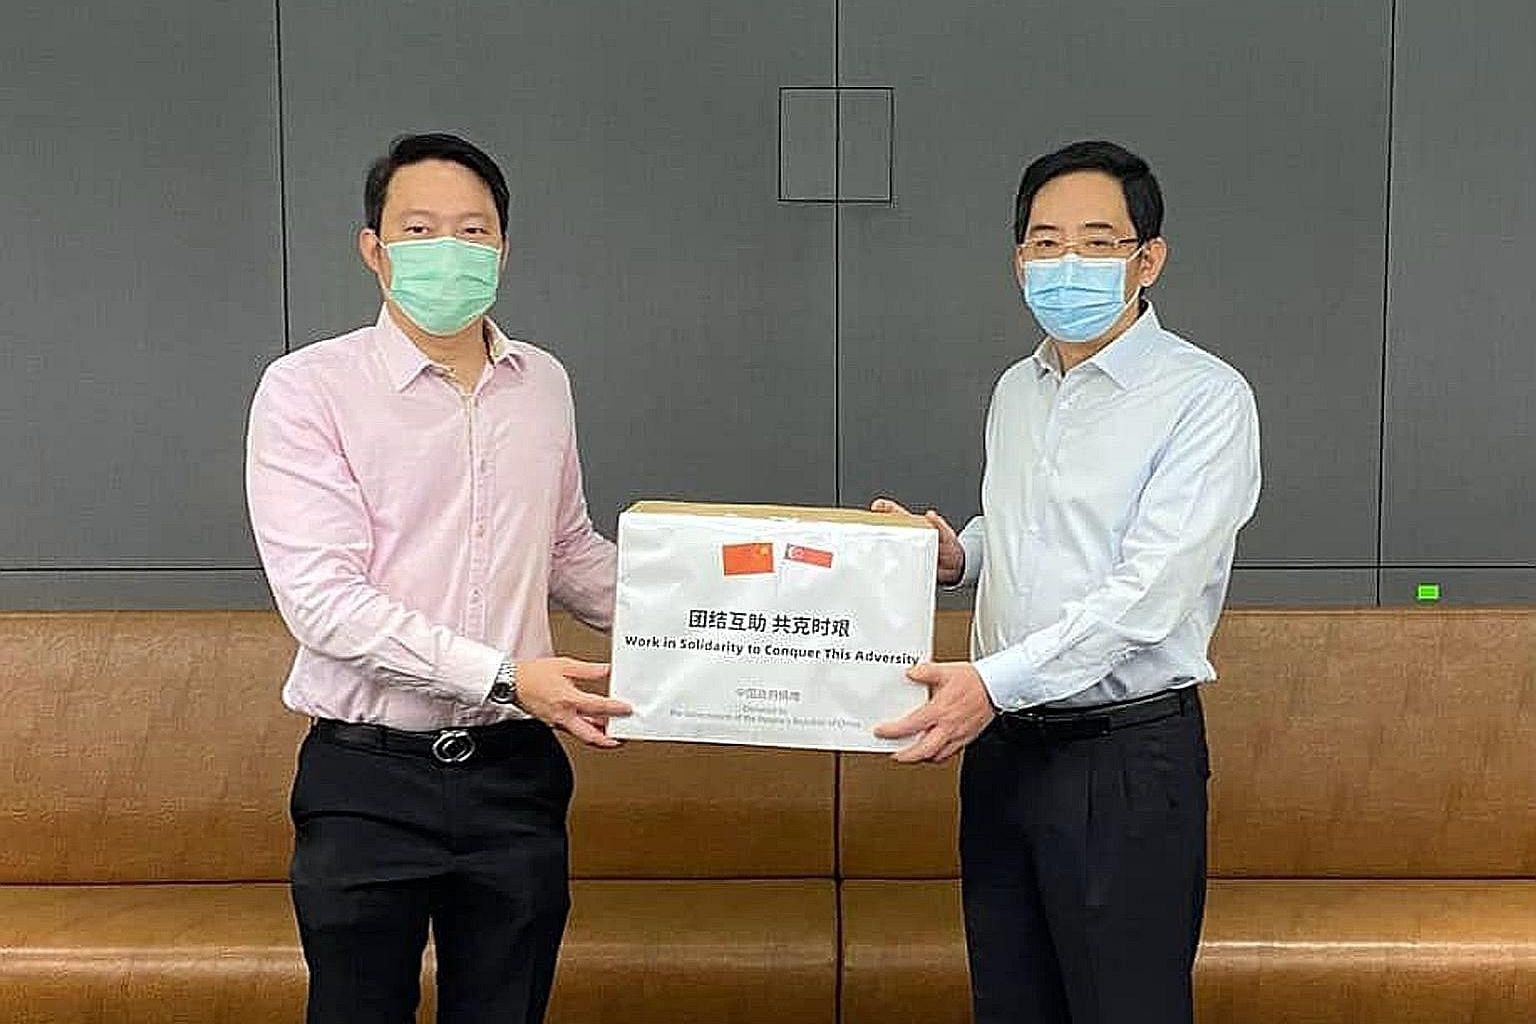 Senior Minister of State for Health Lam Pin Min (left) receiving a donation of masks from China's Ambassador to Singapore Hong Xiaoyong at the Ministry of Health yesterday.